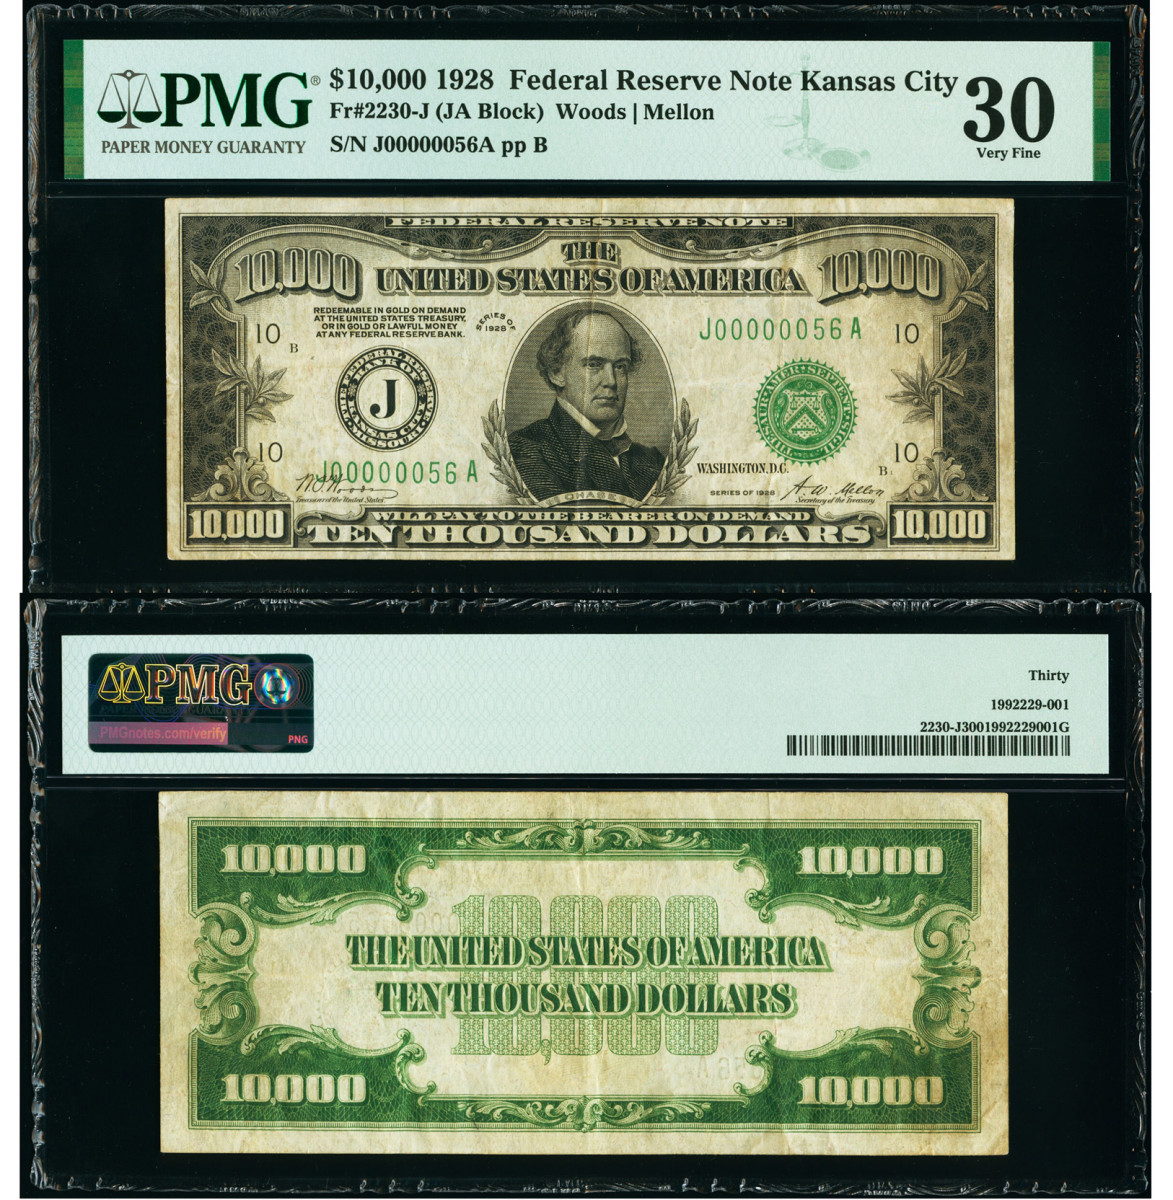 Kansas City District 1928 $10,000 Federal Reserve Note. (Images courtesy Heritage Auctions, HA.com.)